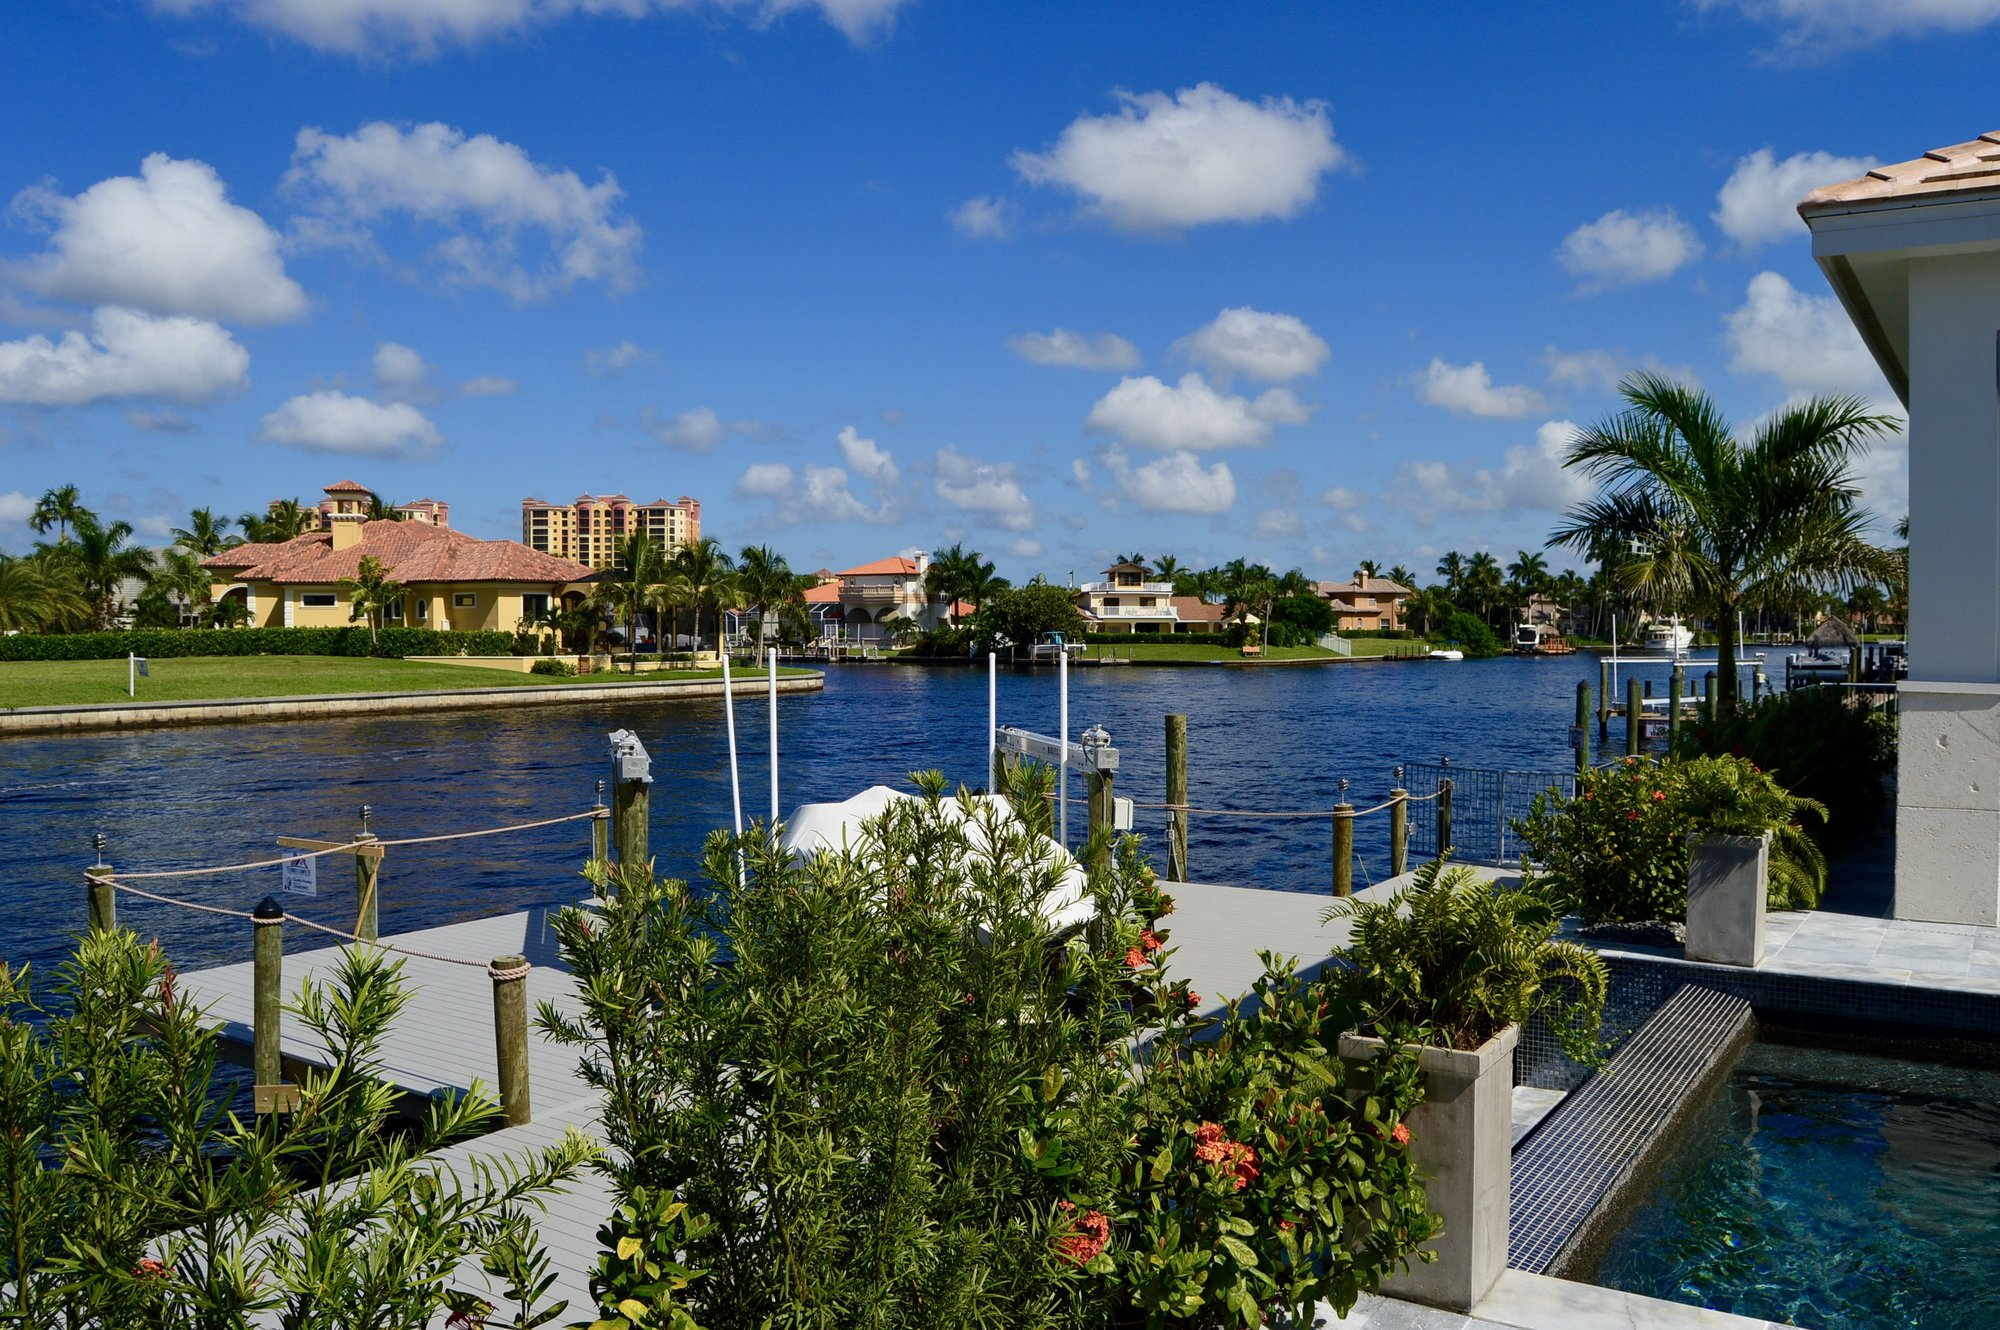 New Homes Gulf Access, Waterfront Gulf Access Home Southwest Florida